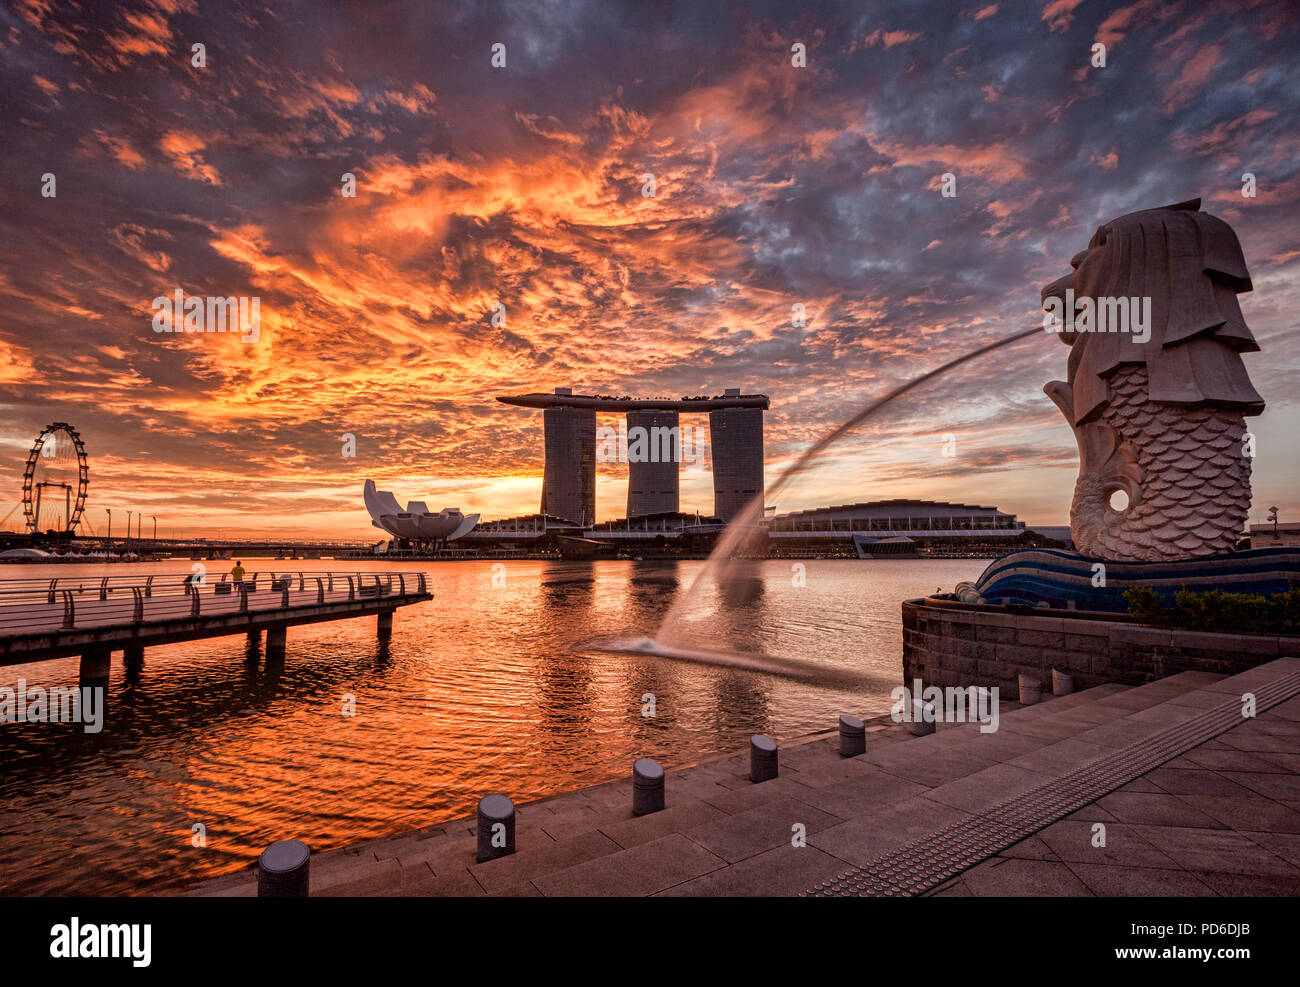 Singapore skyline at sunrise, with the Merlion, the Marina Bay Sands, the Art ans Science Museum and the Singapore Flyer, all under a dramatic sunrise - Stock Image